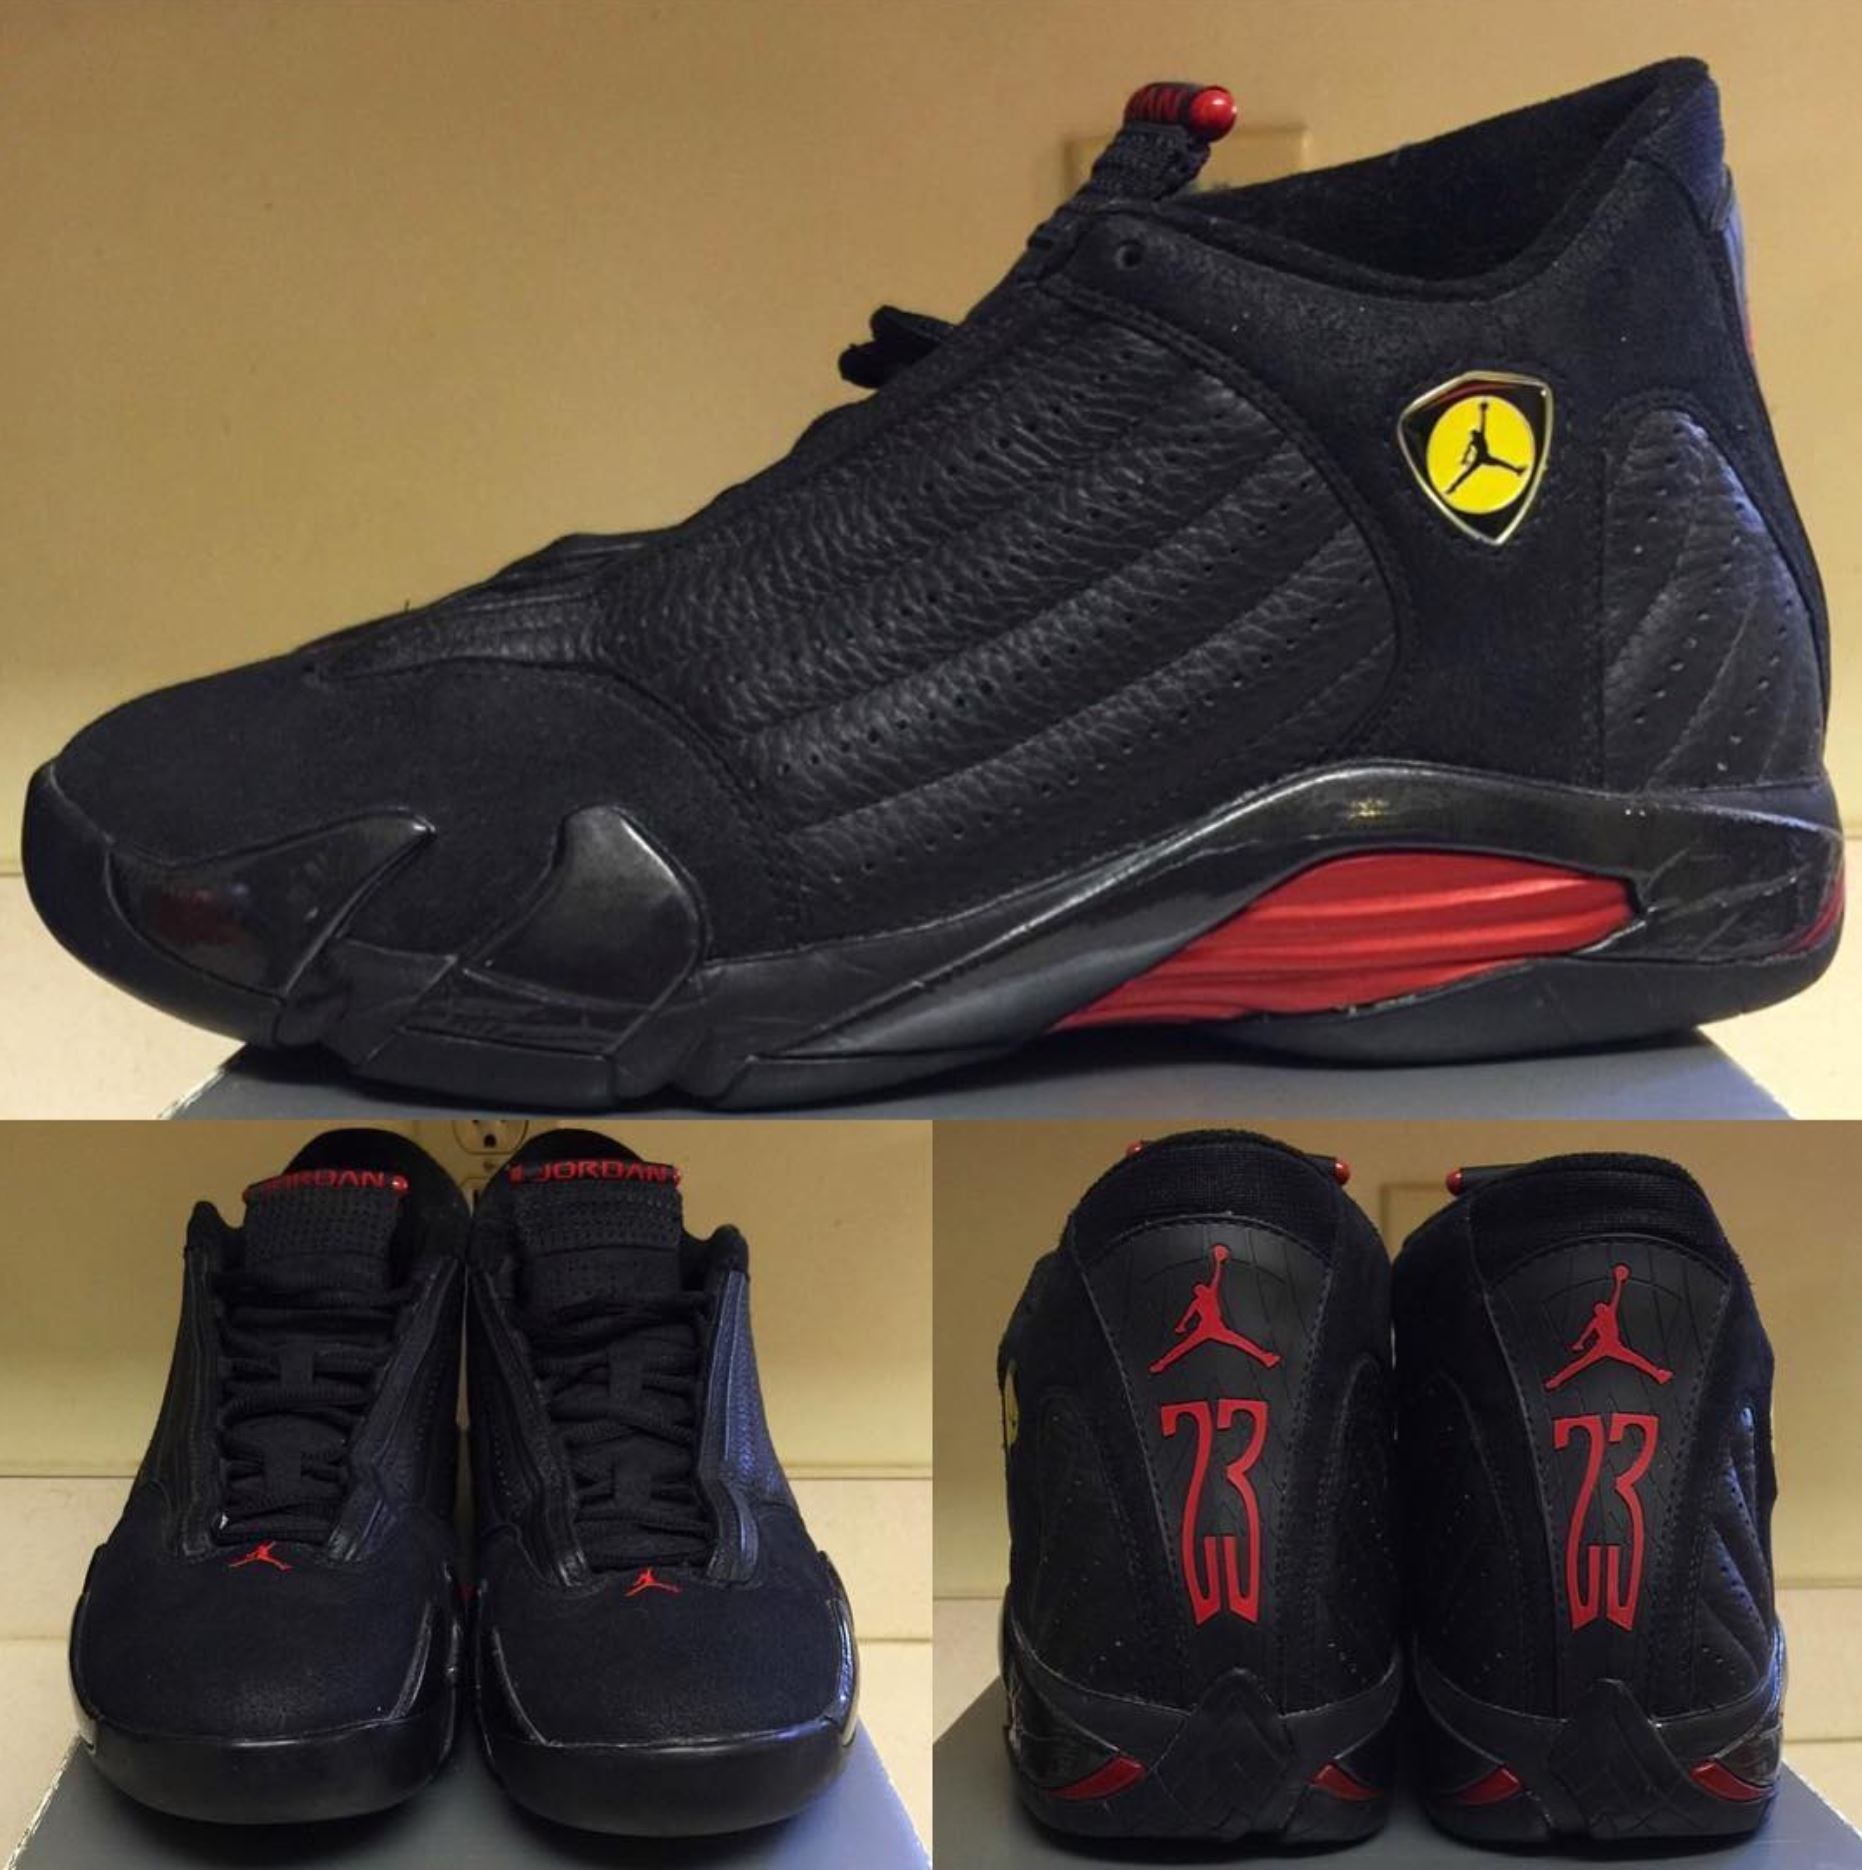 Air Jordan 14 Último Disparo Civil De 2005 MJzlNG